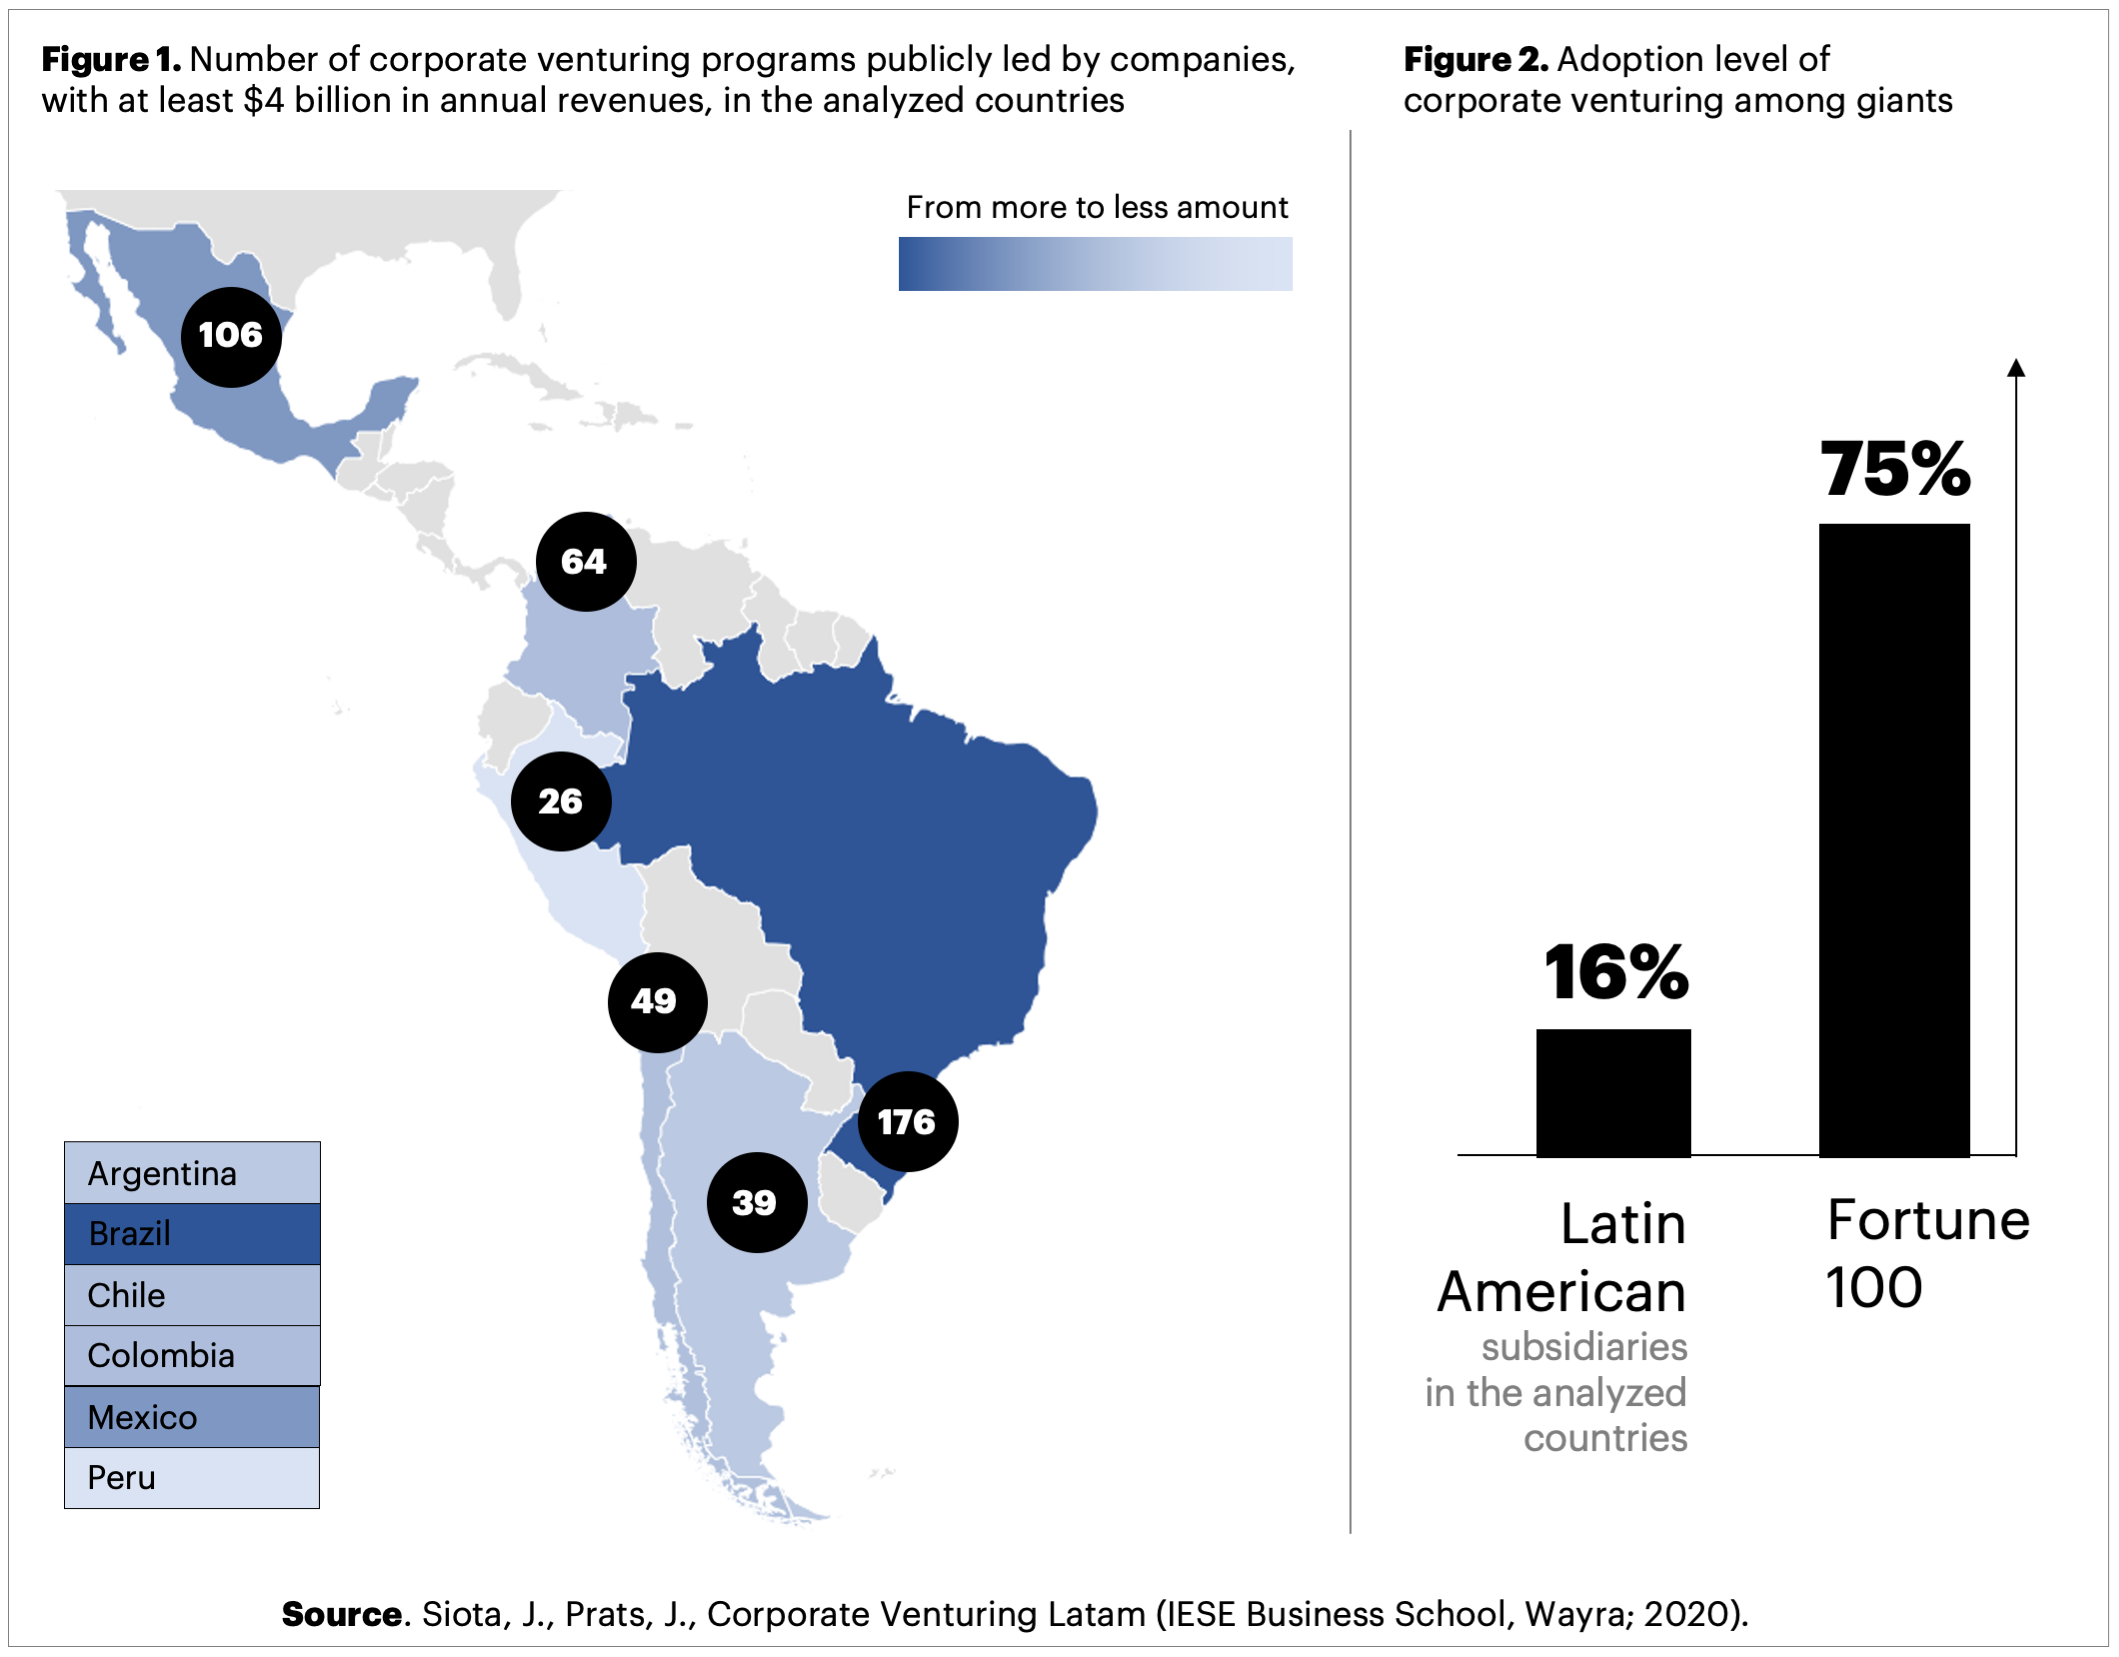 The numbers of corporate venturing programmes led by companies across Latin America